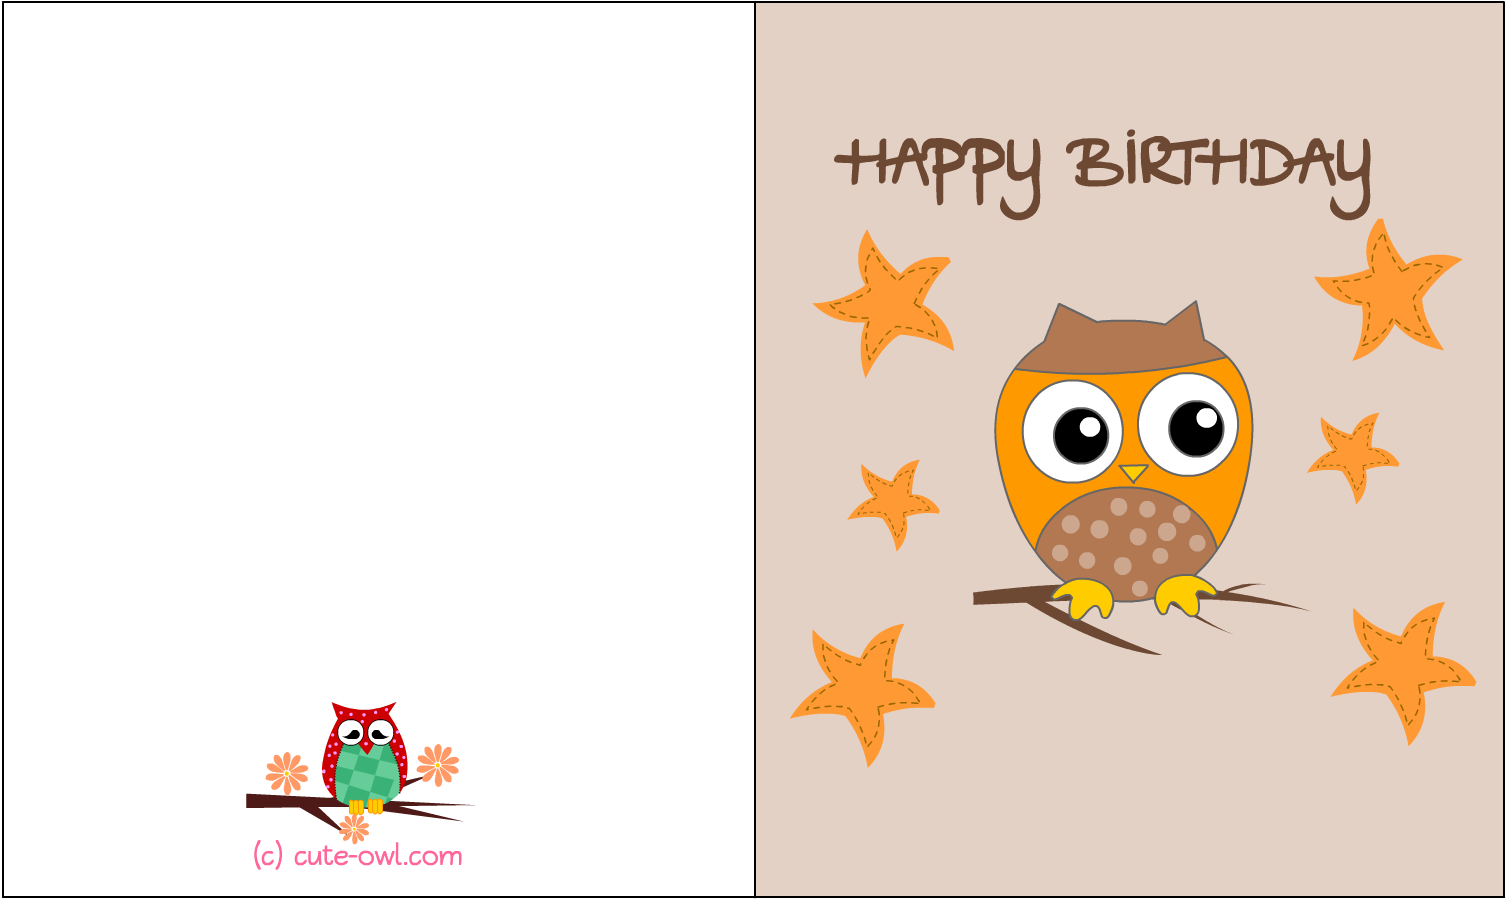 Happy Birthday Printable Free Owl Cards 1650x1275 Png Download